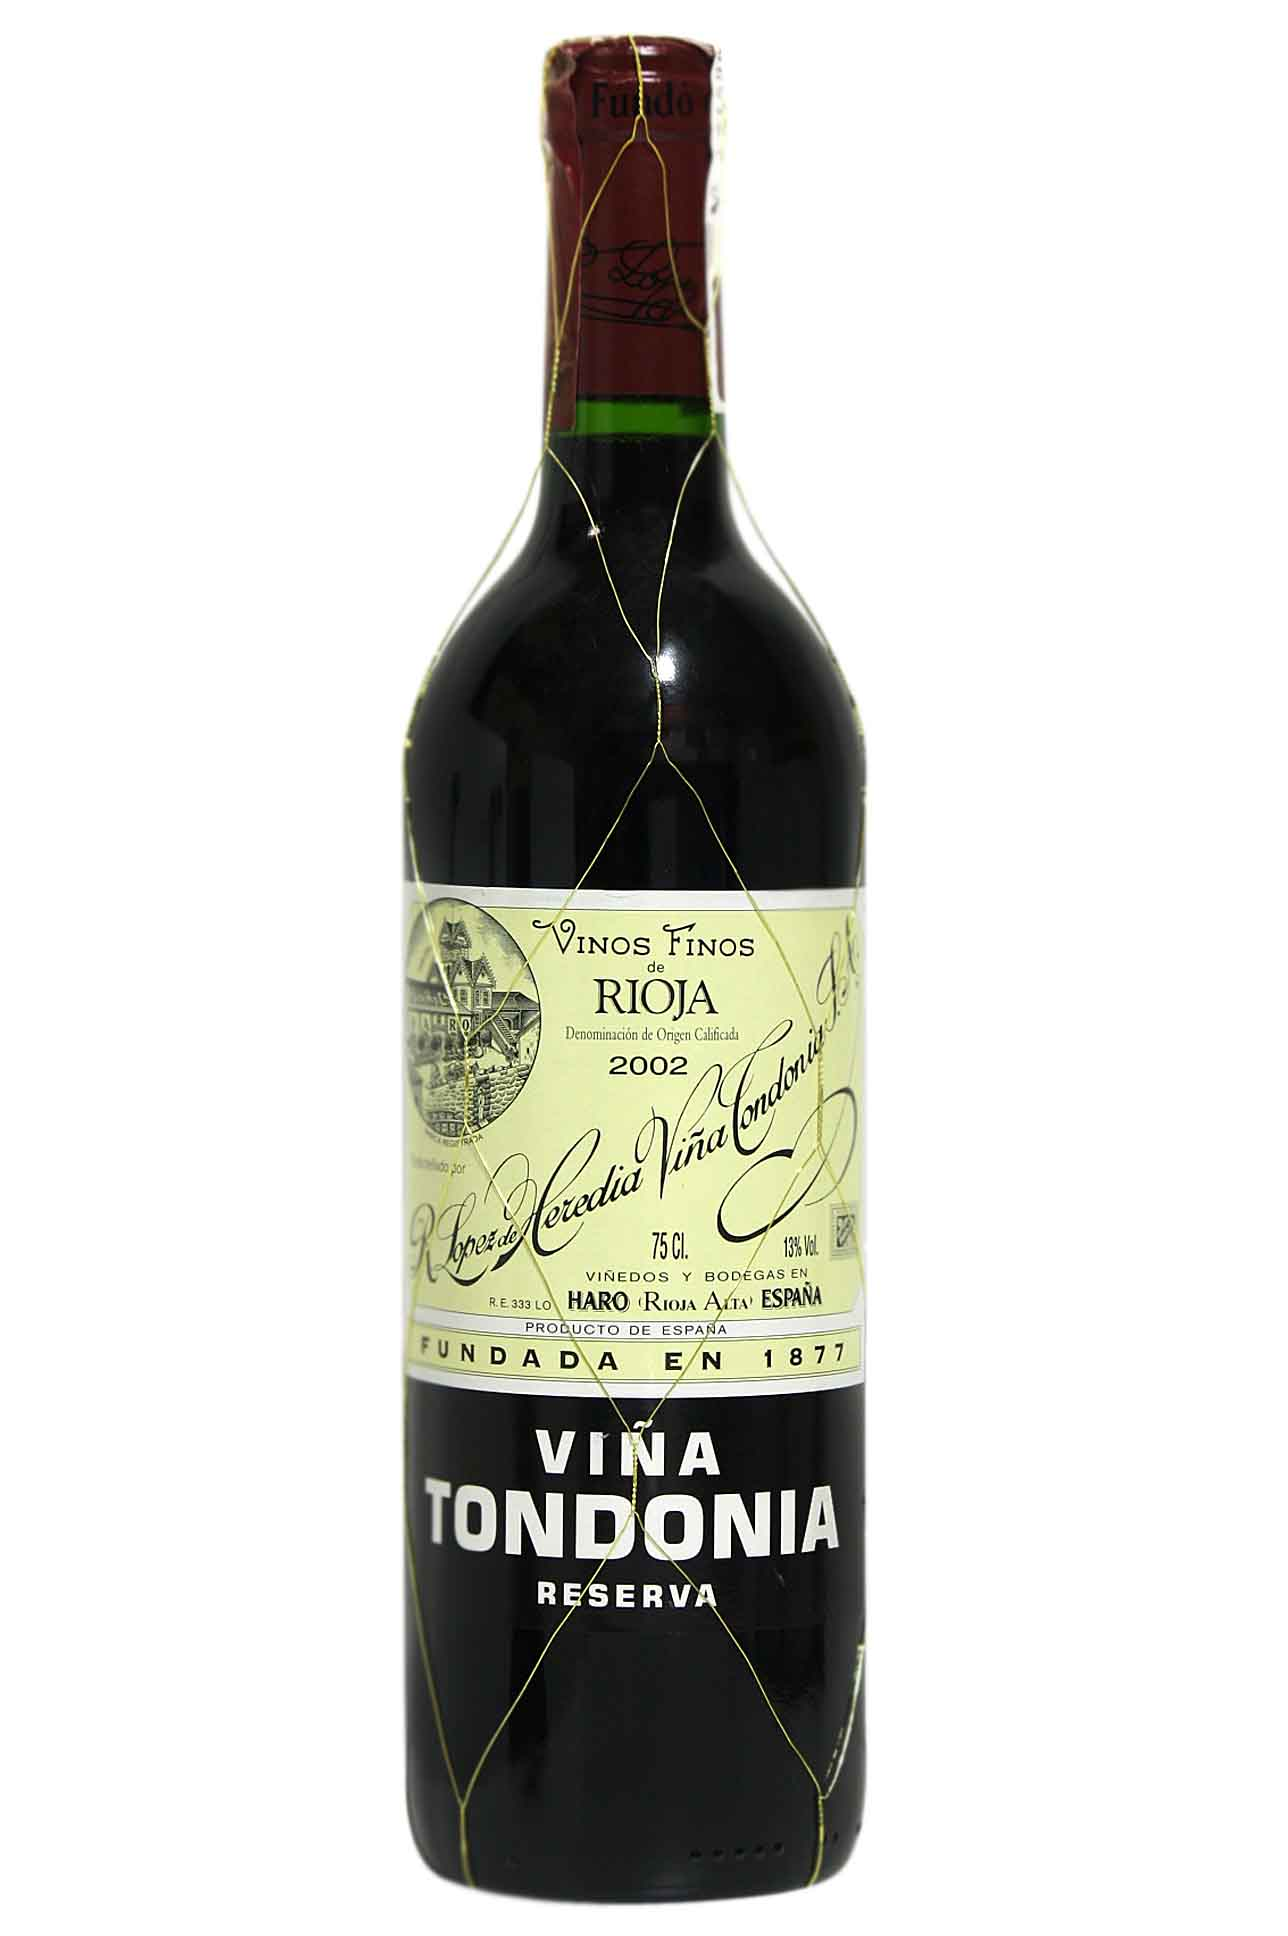 Aged red wine Viña Tondonia